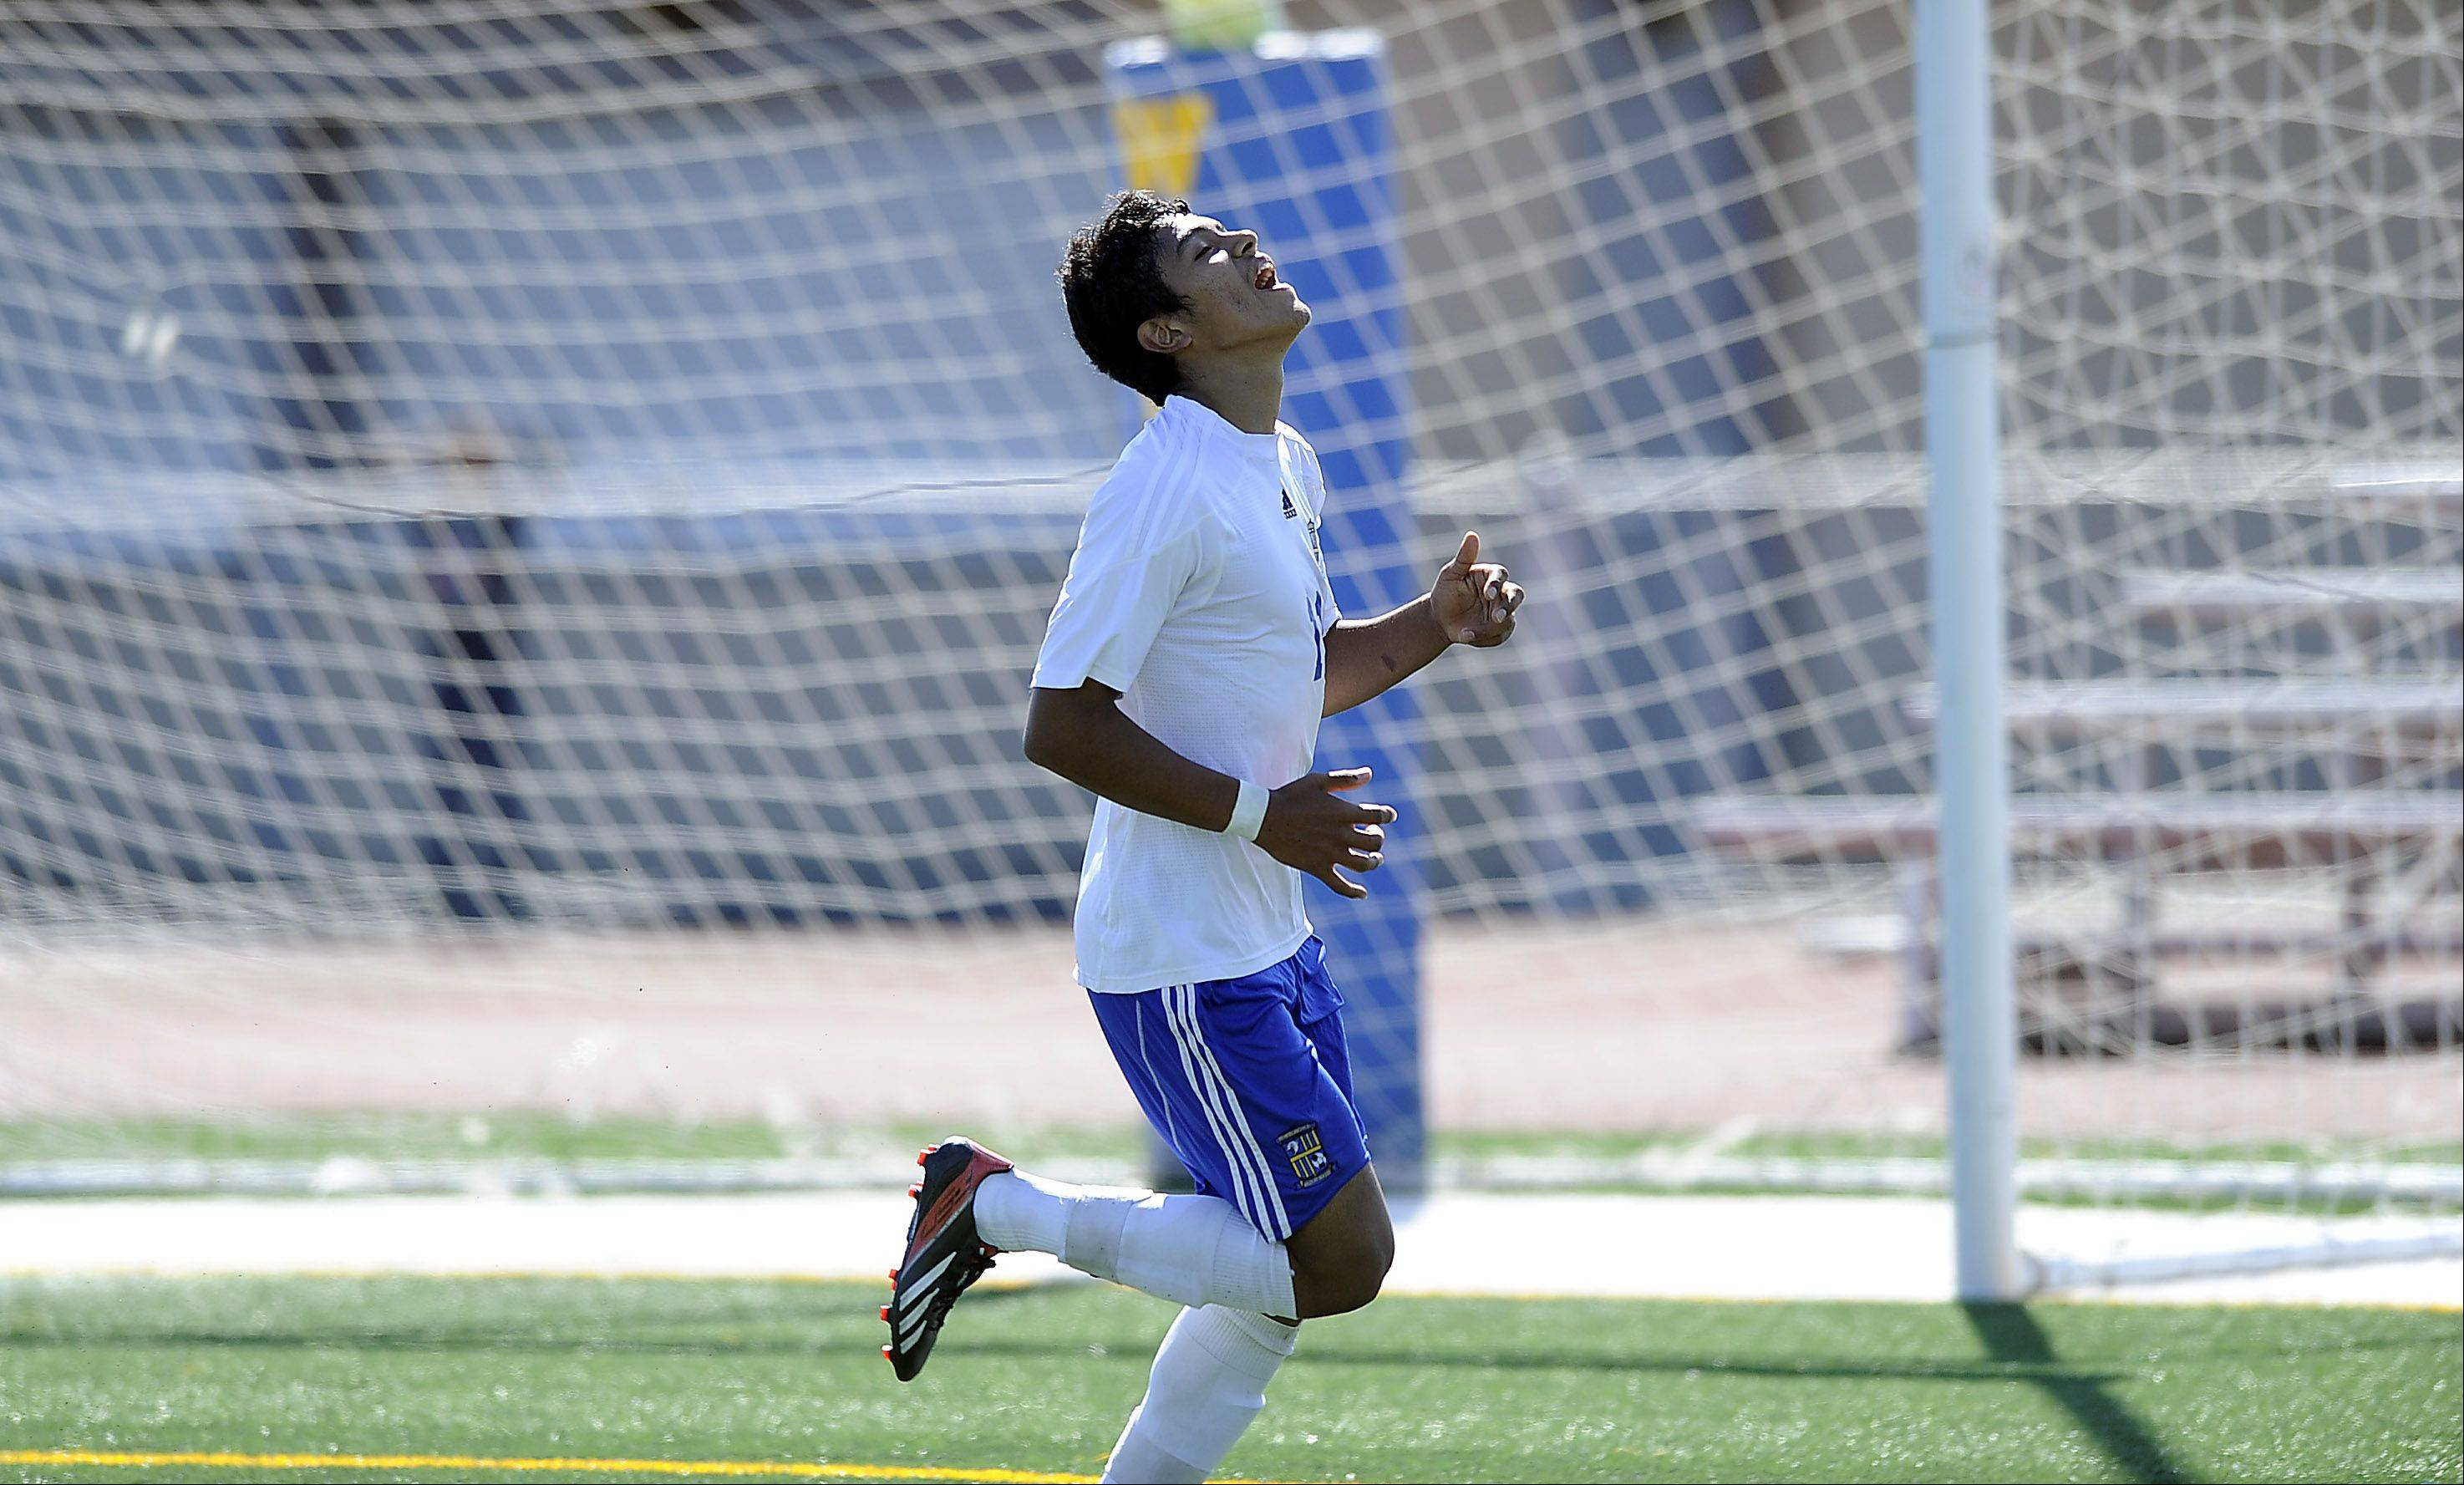 Wheeling's Luis Herrera reacts after seeing his shot go to the left of the goal in action against Jacobs at Wheeling on Saturday.